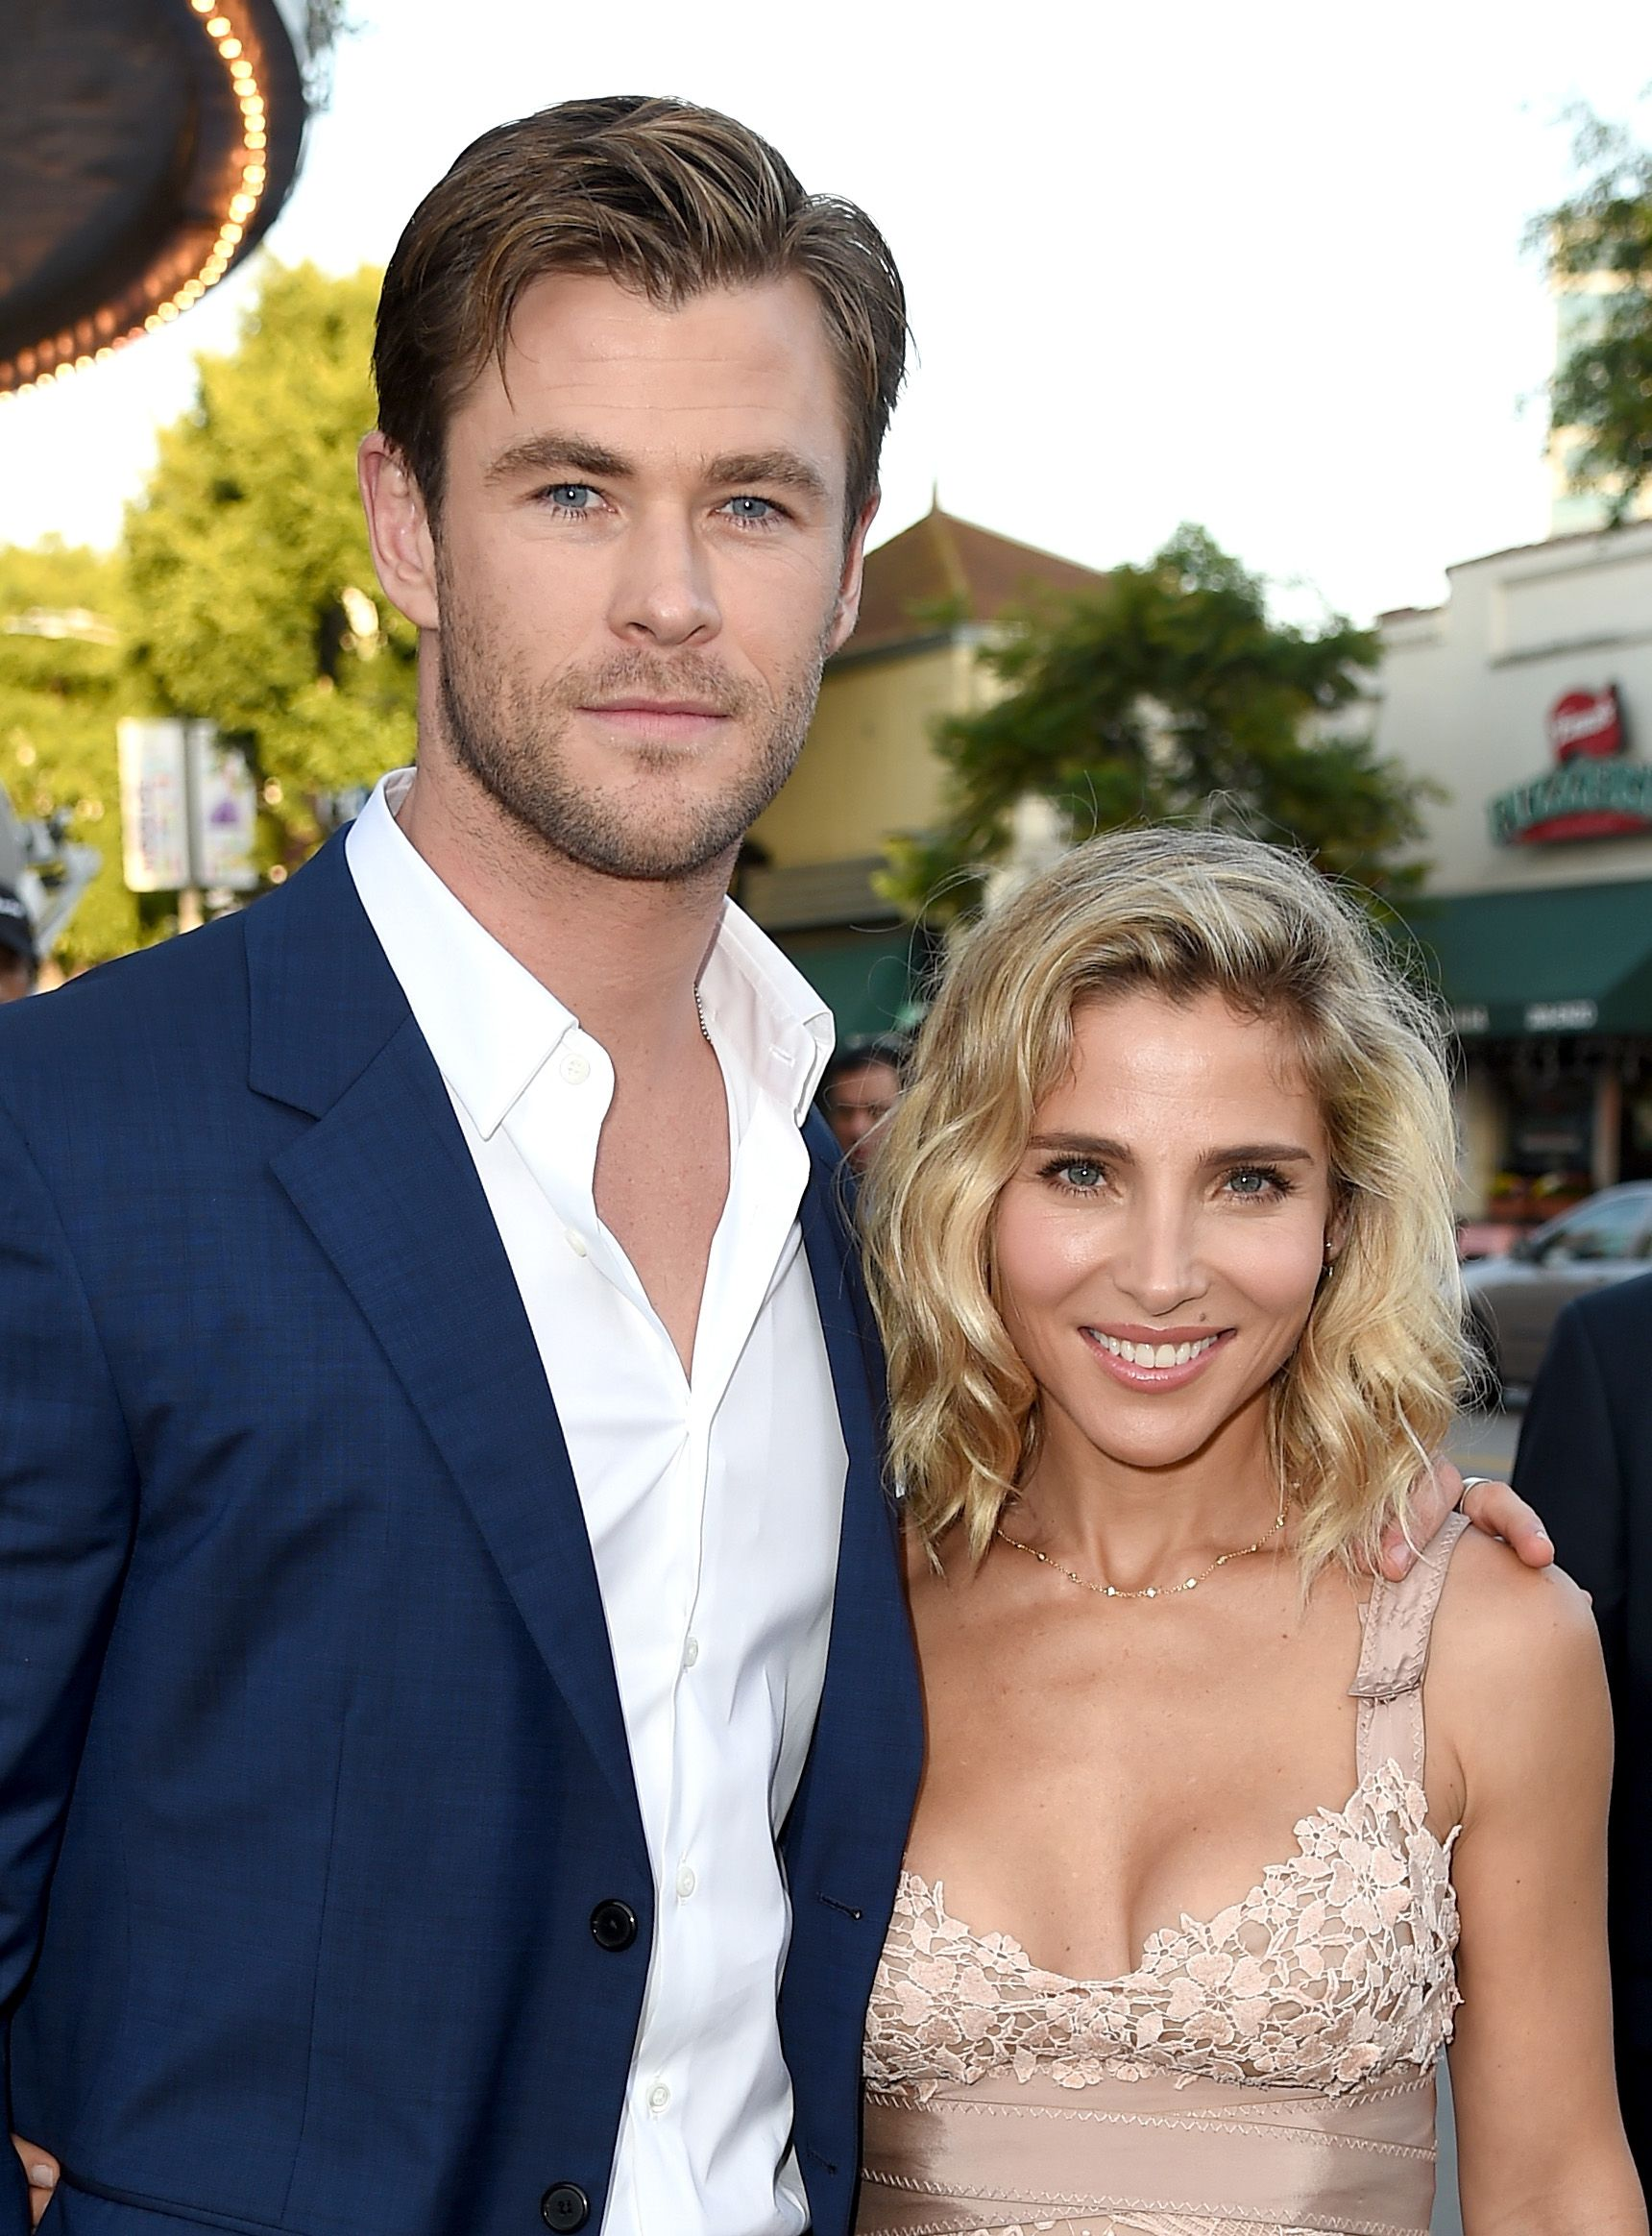 Chris Hemsworth and Elsa Pataky The beautiful Aussies met through their dialect coach, who knew they would hit it off. She was right—the couple married in 2010.